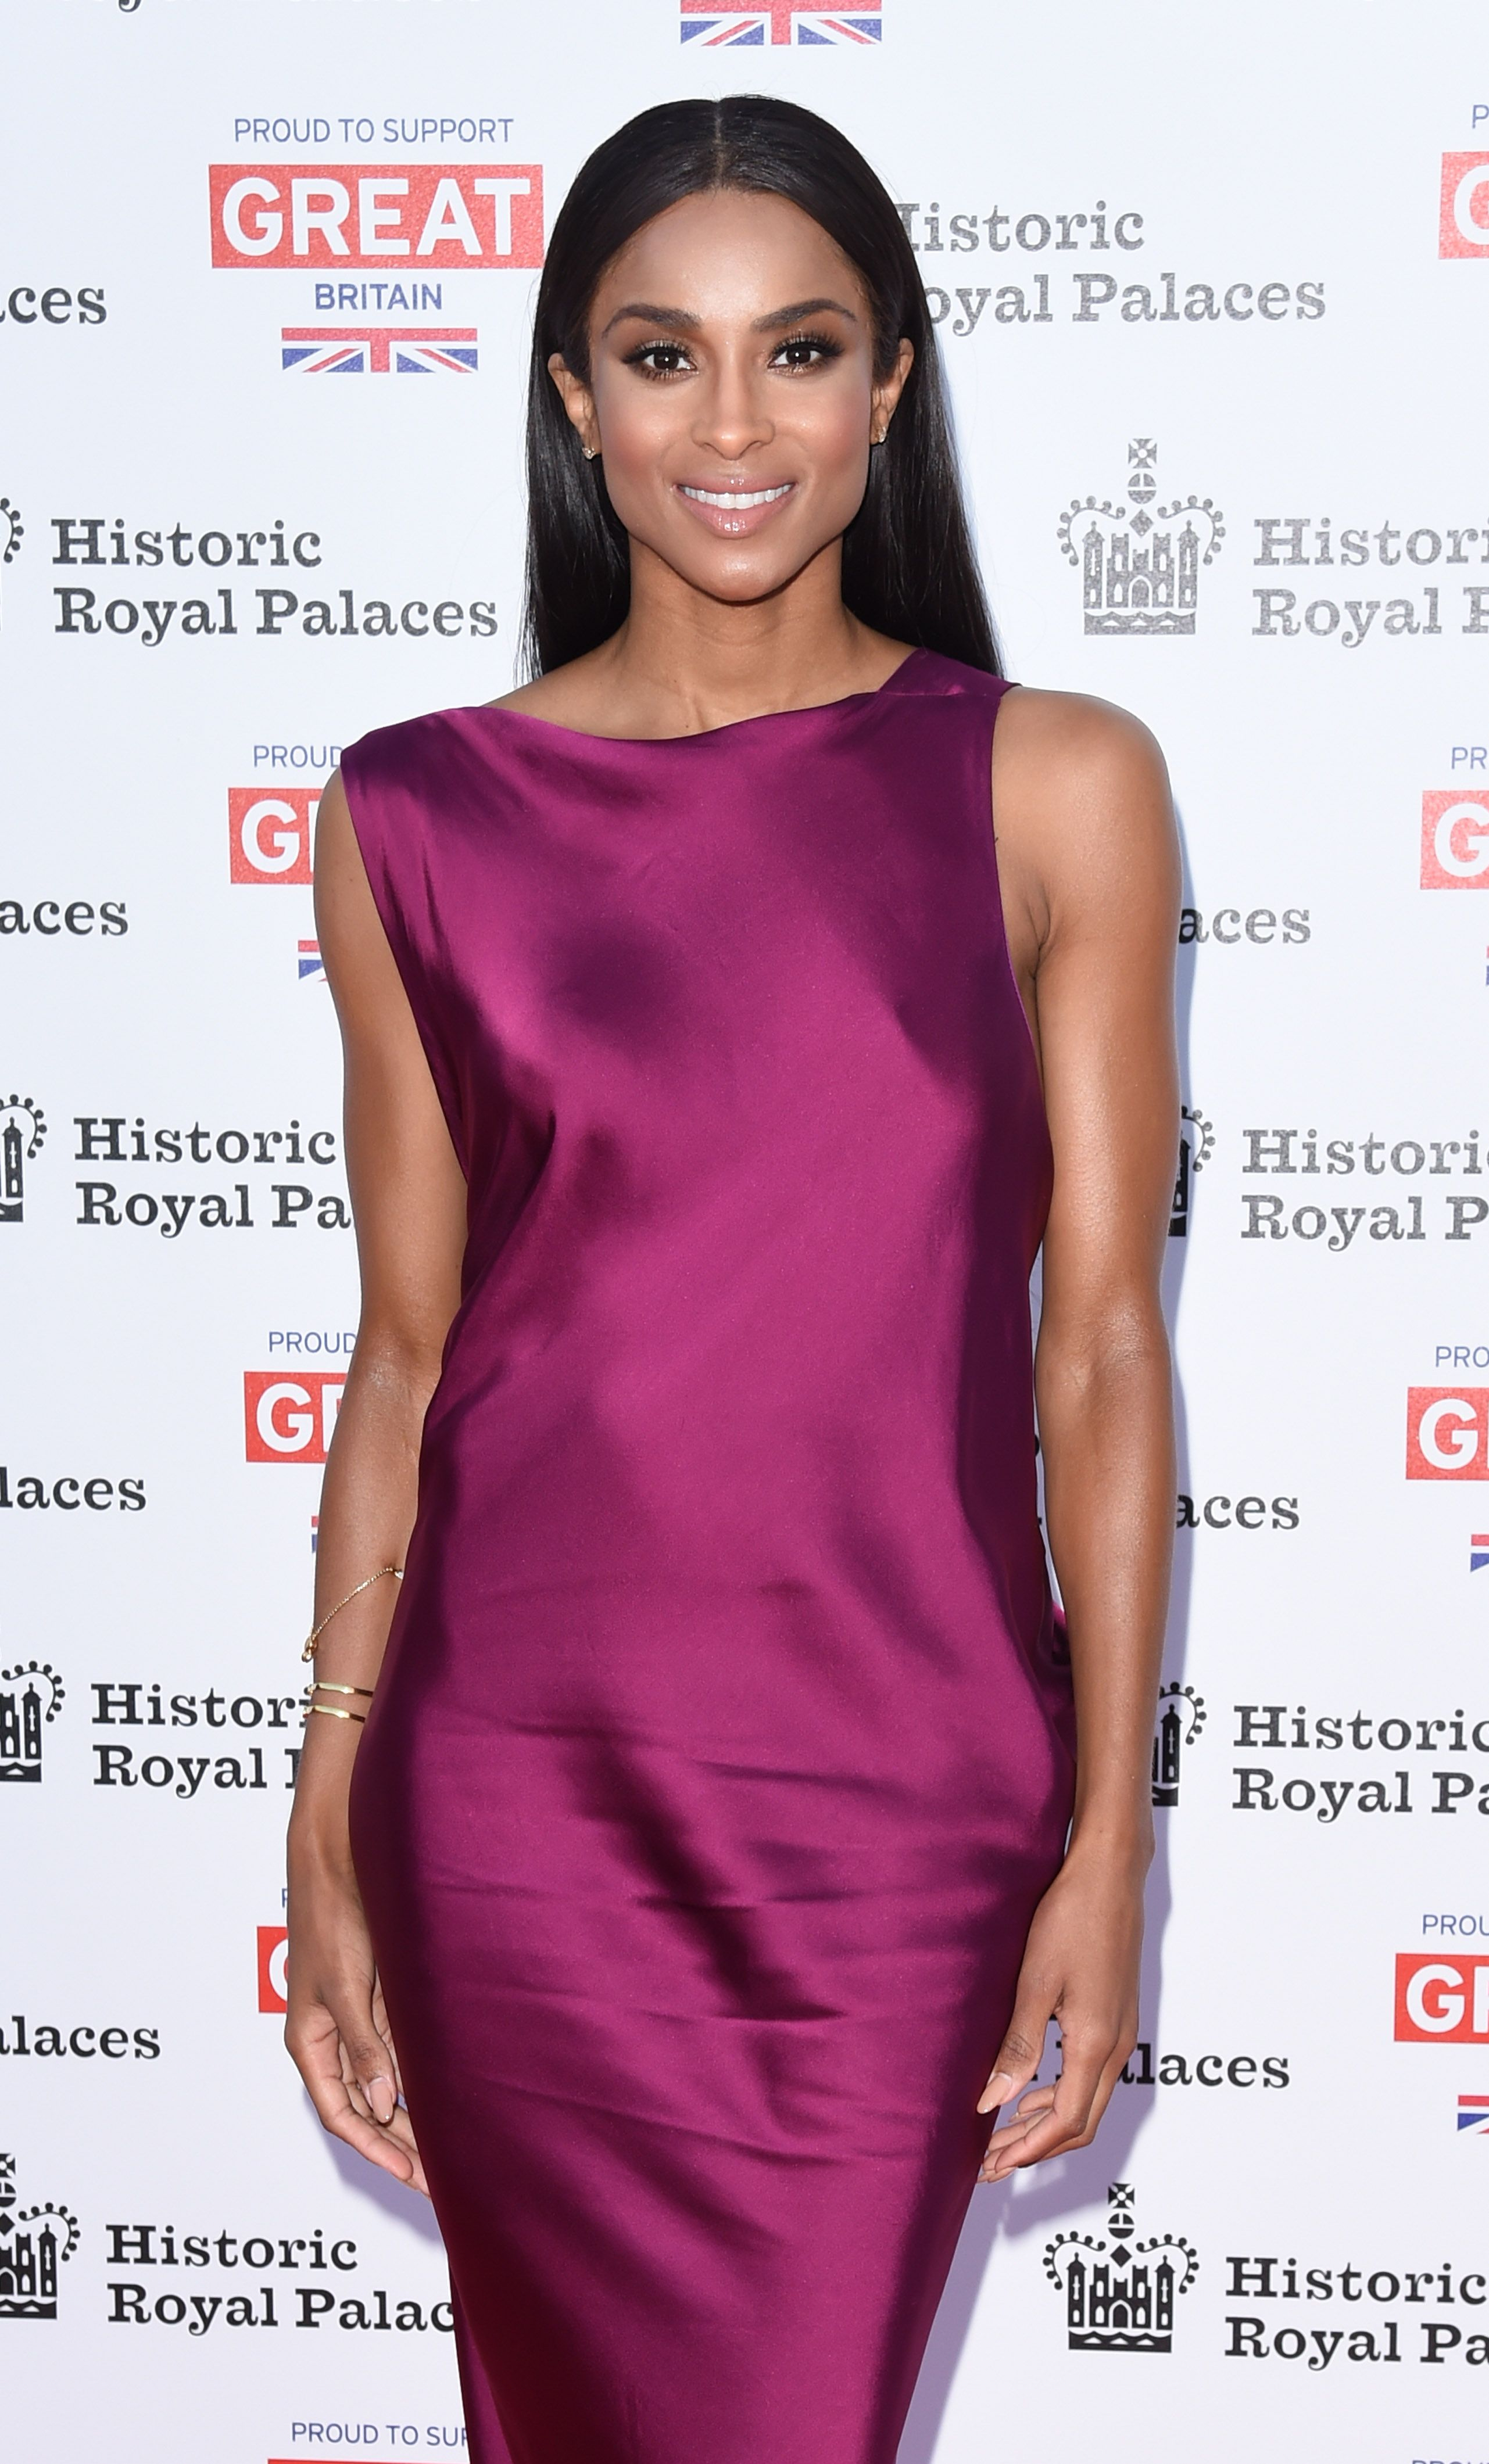 Ciara during the Kensington Palace Summer Gala at Kensington Palace on July 9, 2015 in London, England. | Source: Getty Images